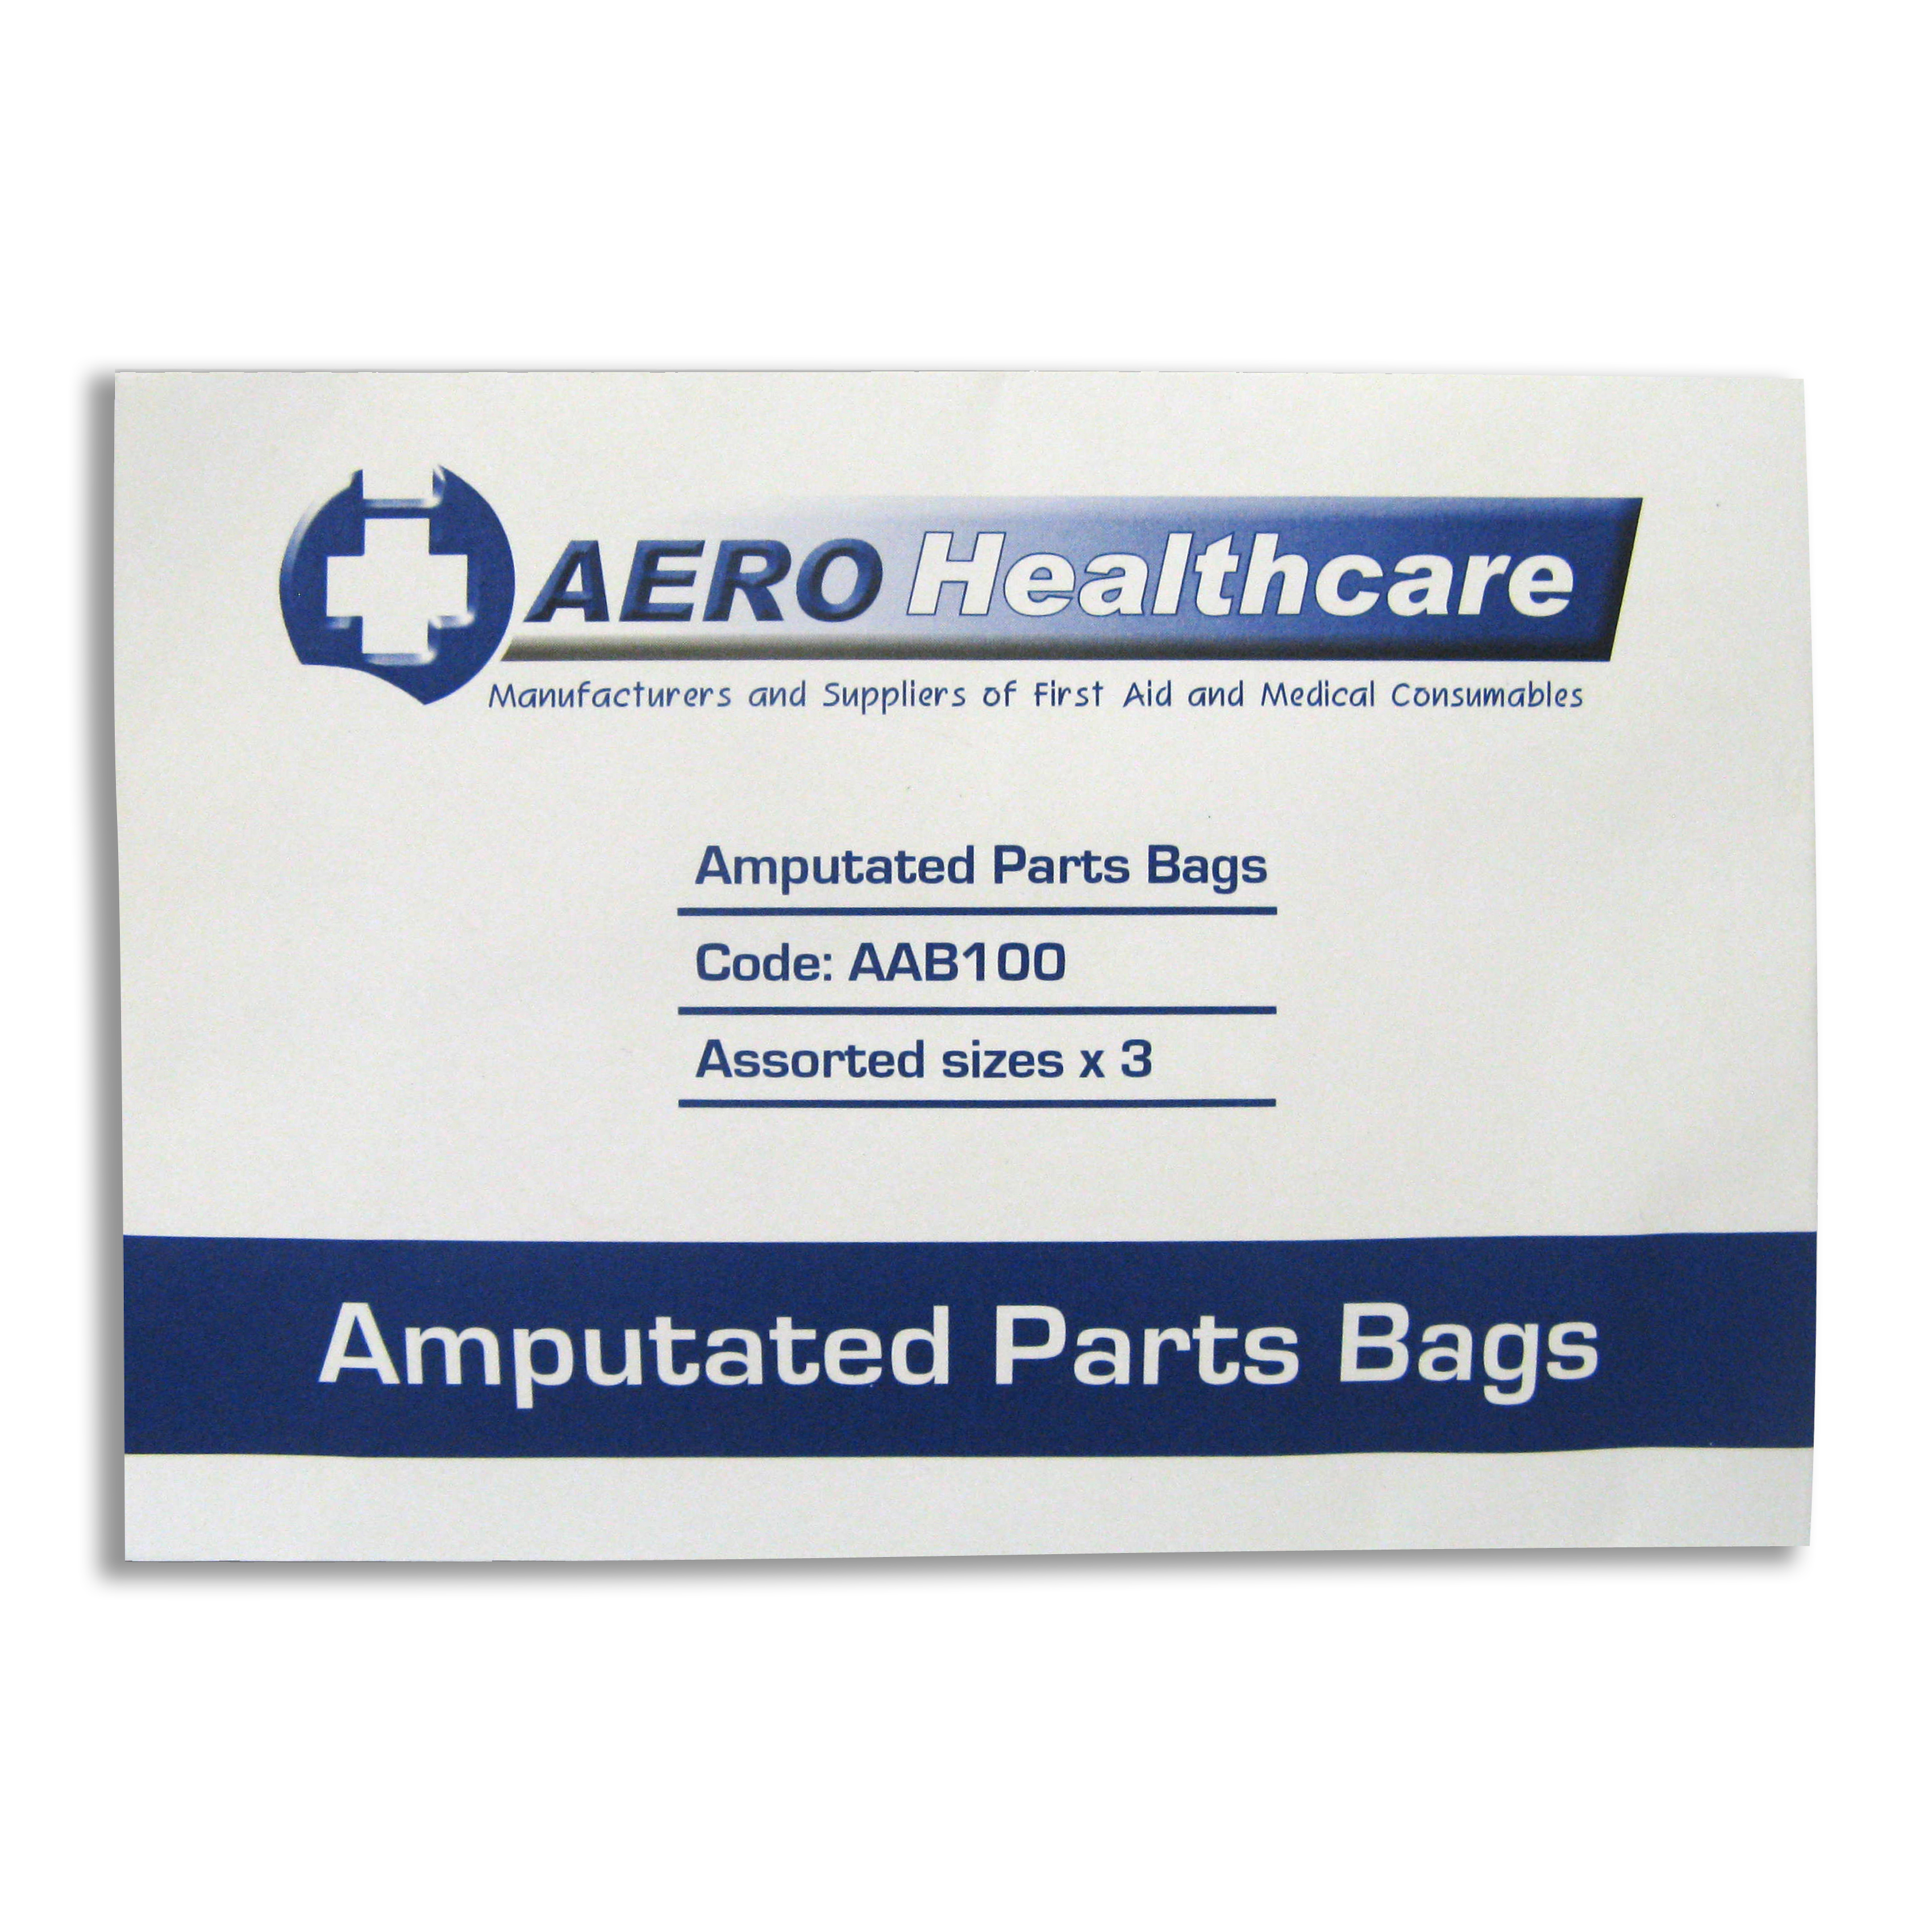 Amputated Parts Bags